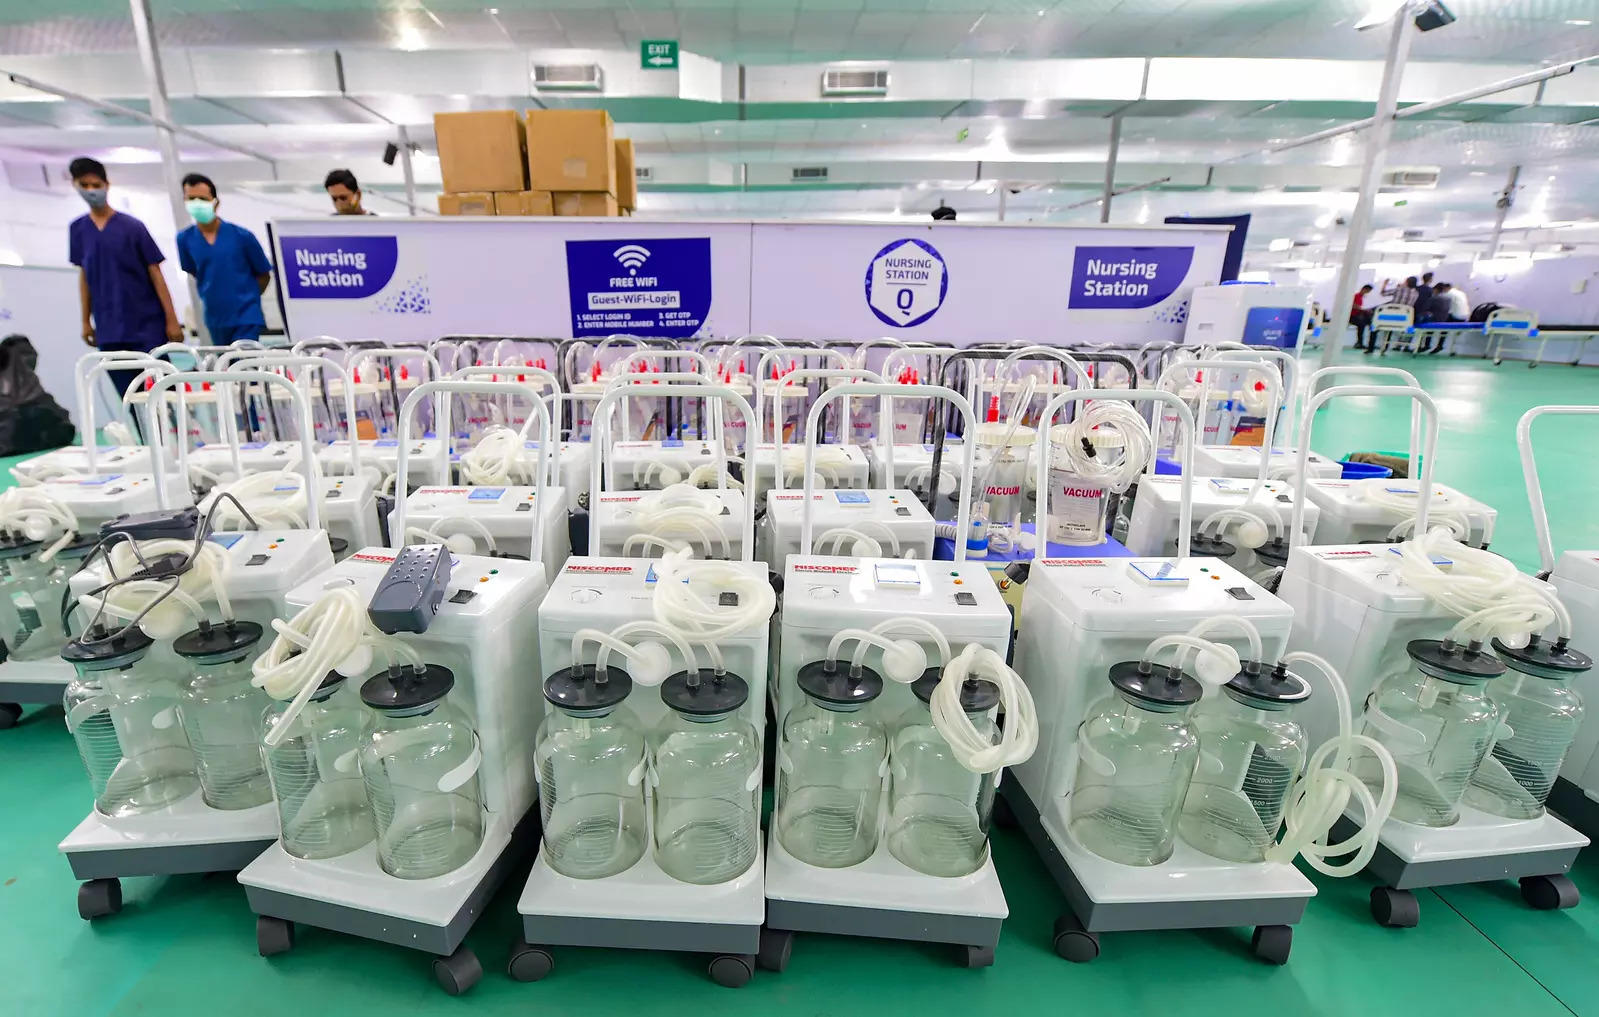 IdeaRx plans to launch pvt label hospital equipment